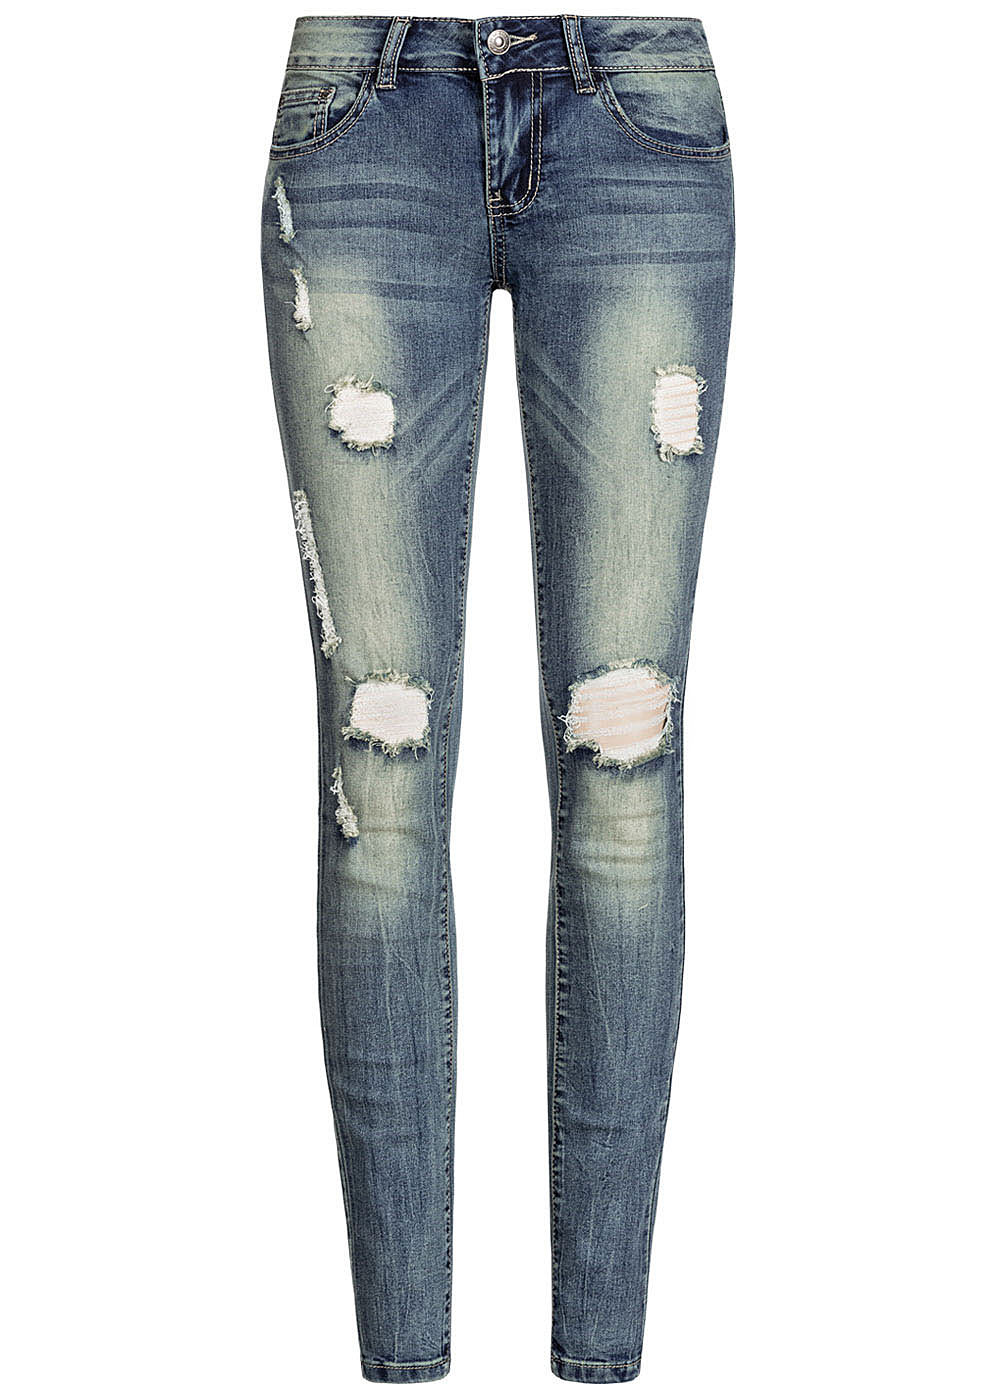 Seventyseven Lifestyle Damen Skinny Jeans 5-Pockets Heavy Destroy Look dunkel blau denim - Art.-Nr.: 19107063